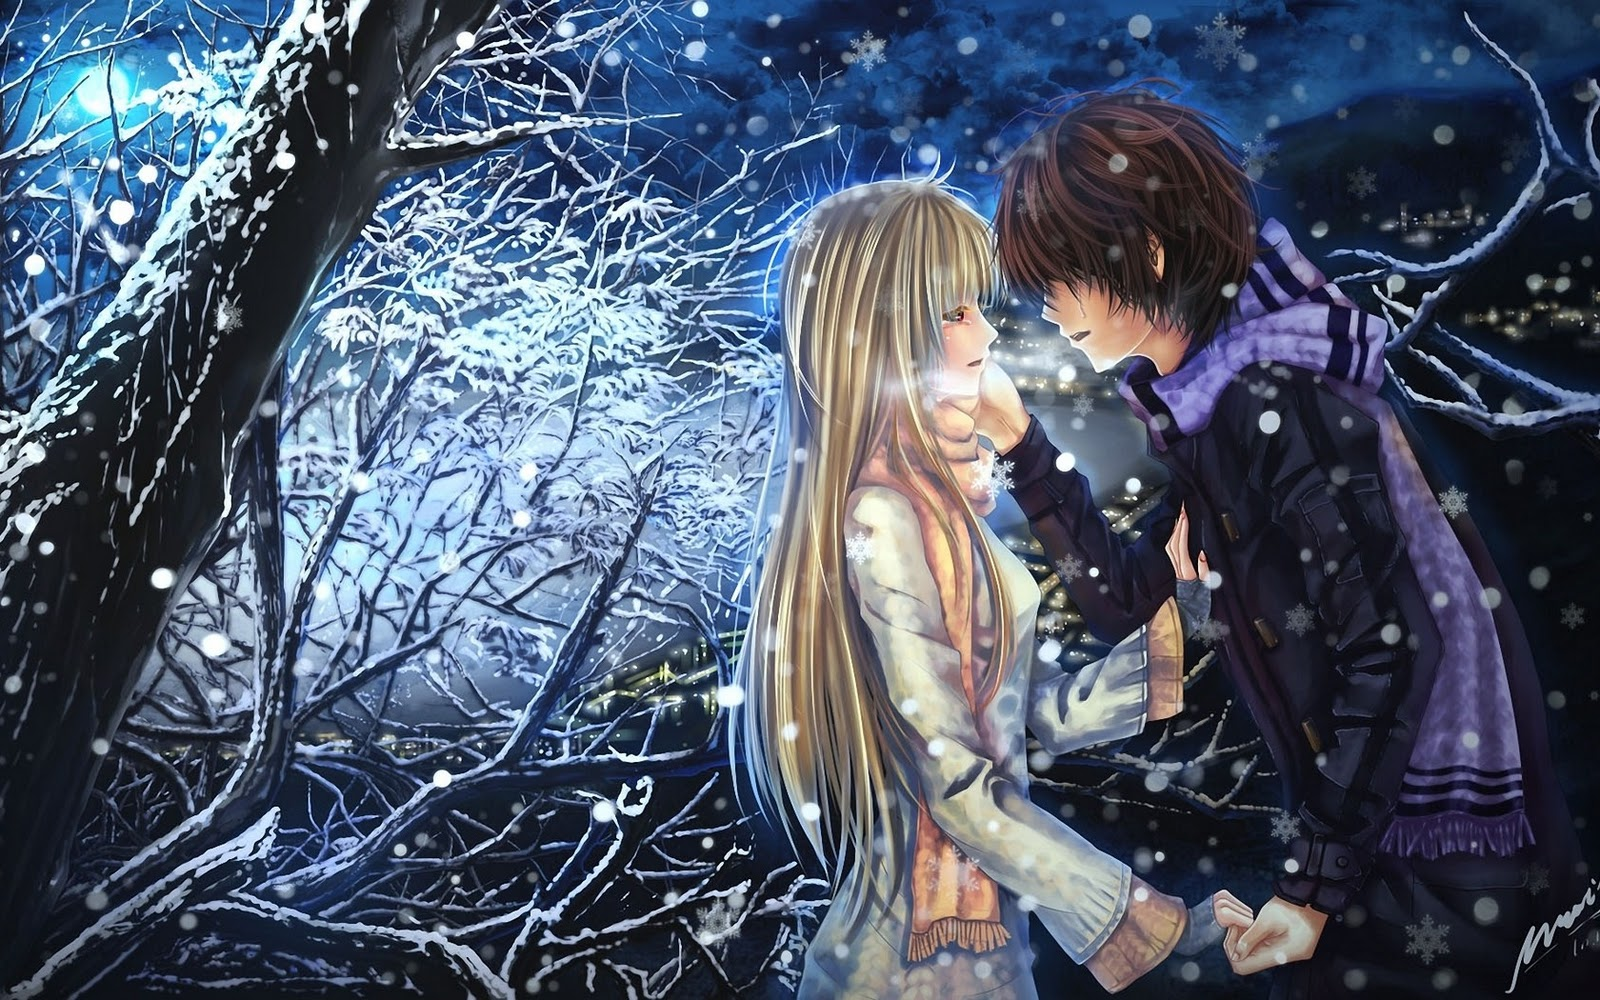 Love couple Best Hd Wallpaper : A2Z Wallpapers: Anime couples In Love Wallpapers